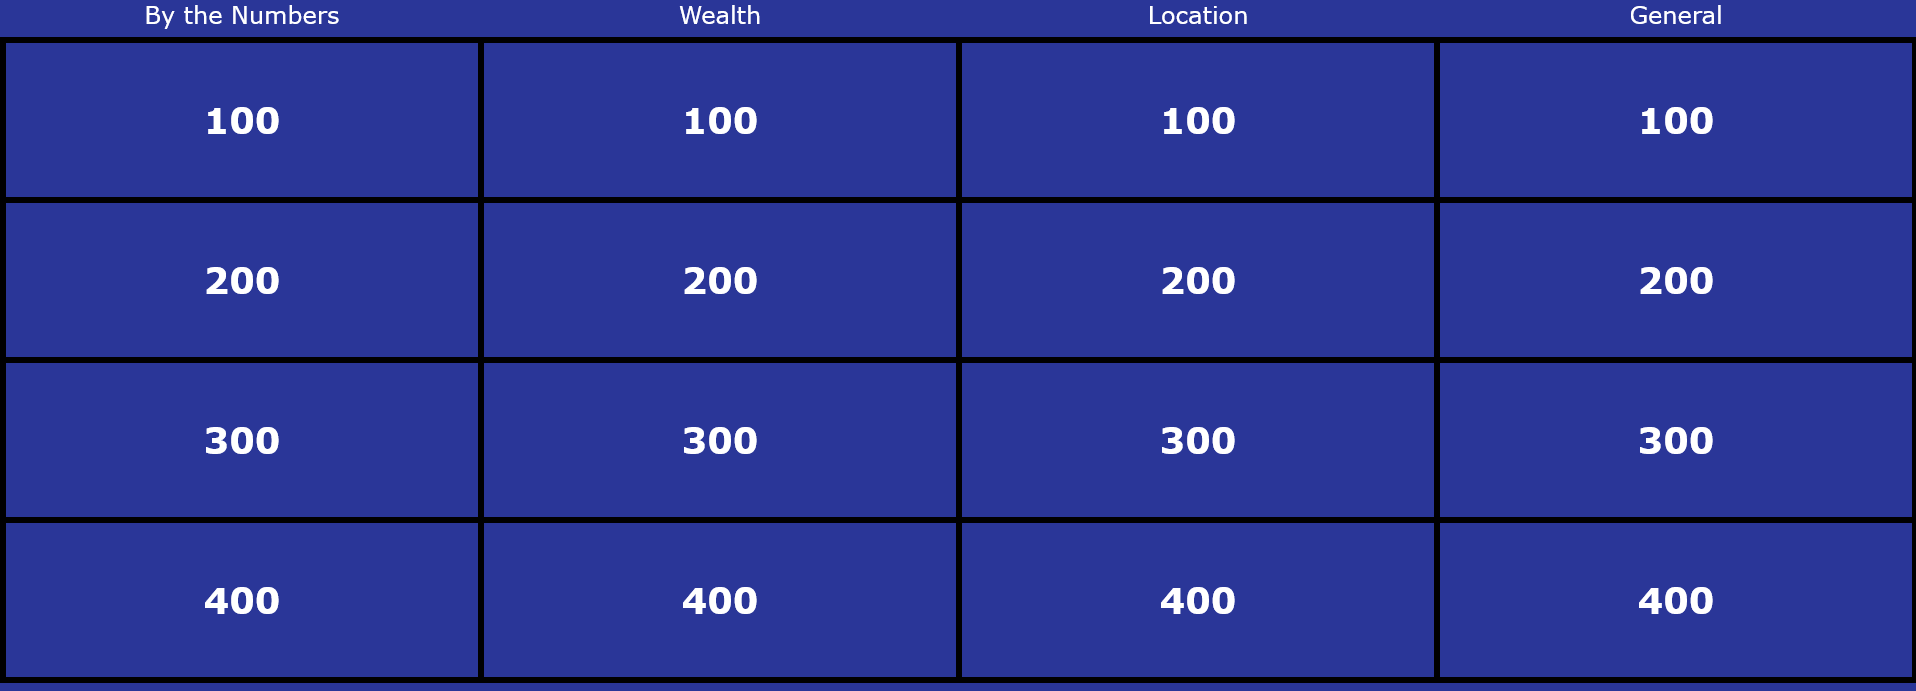 2019 ESOP JEOPARDY BOARD PHOTO